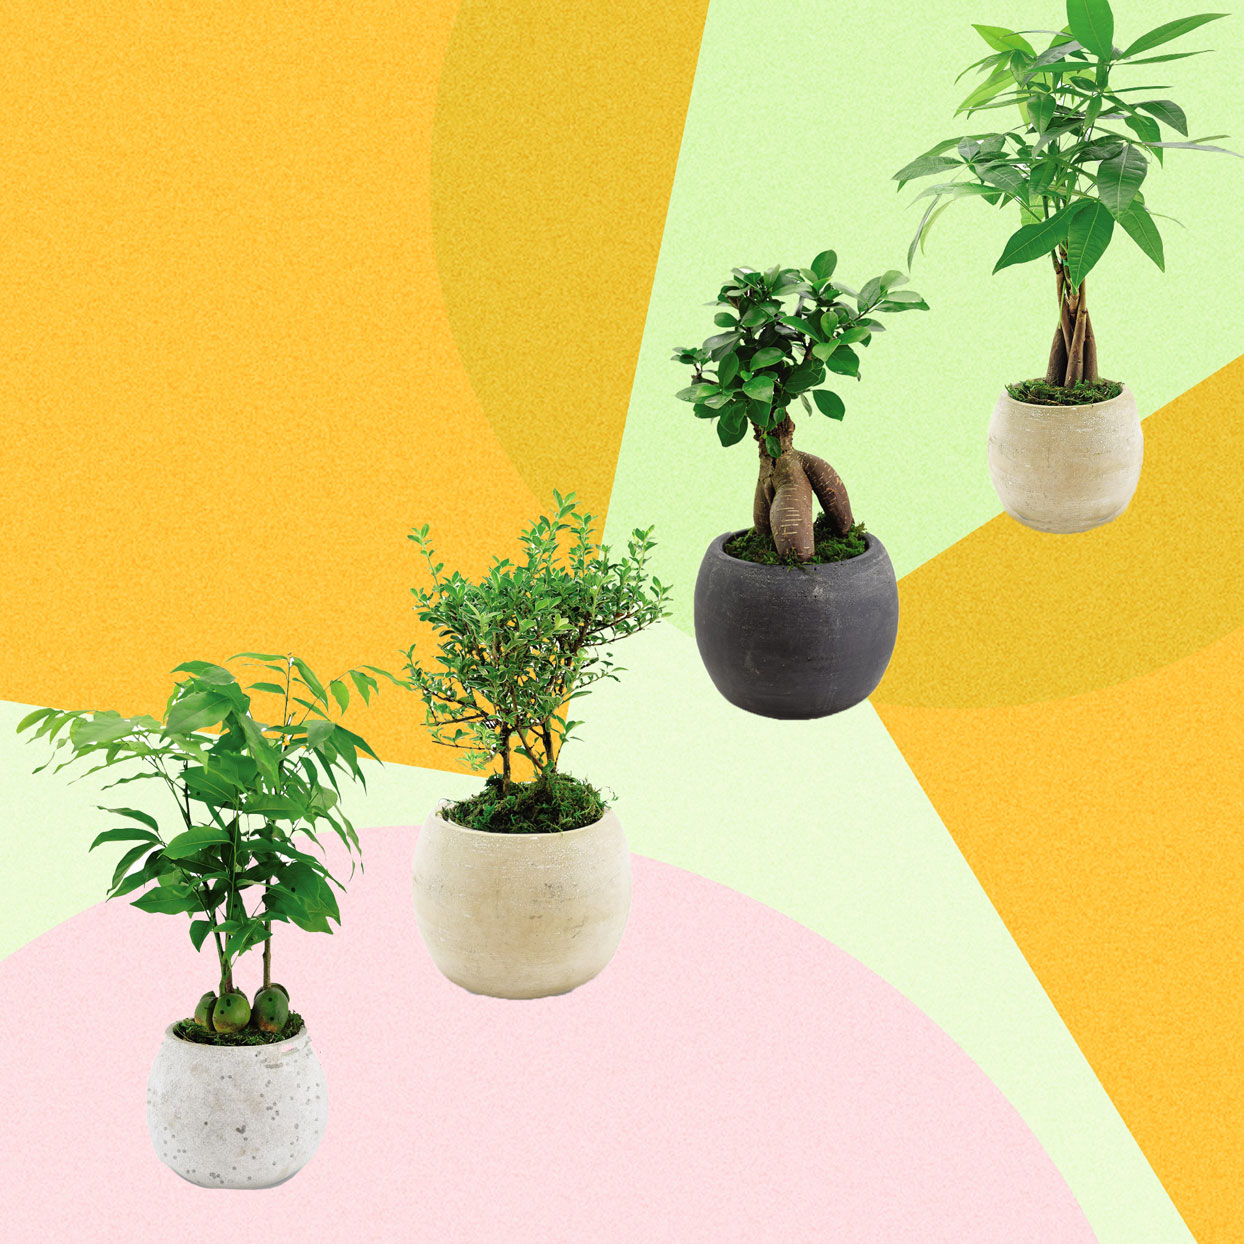 Four New Plants Are Arriving at Aldi This Month, and I Want Them All